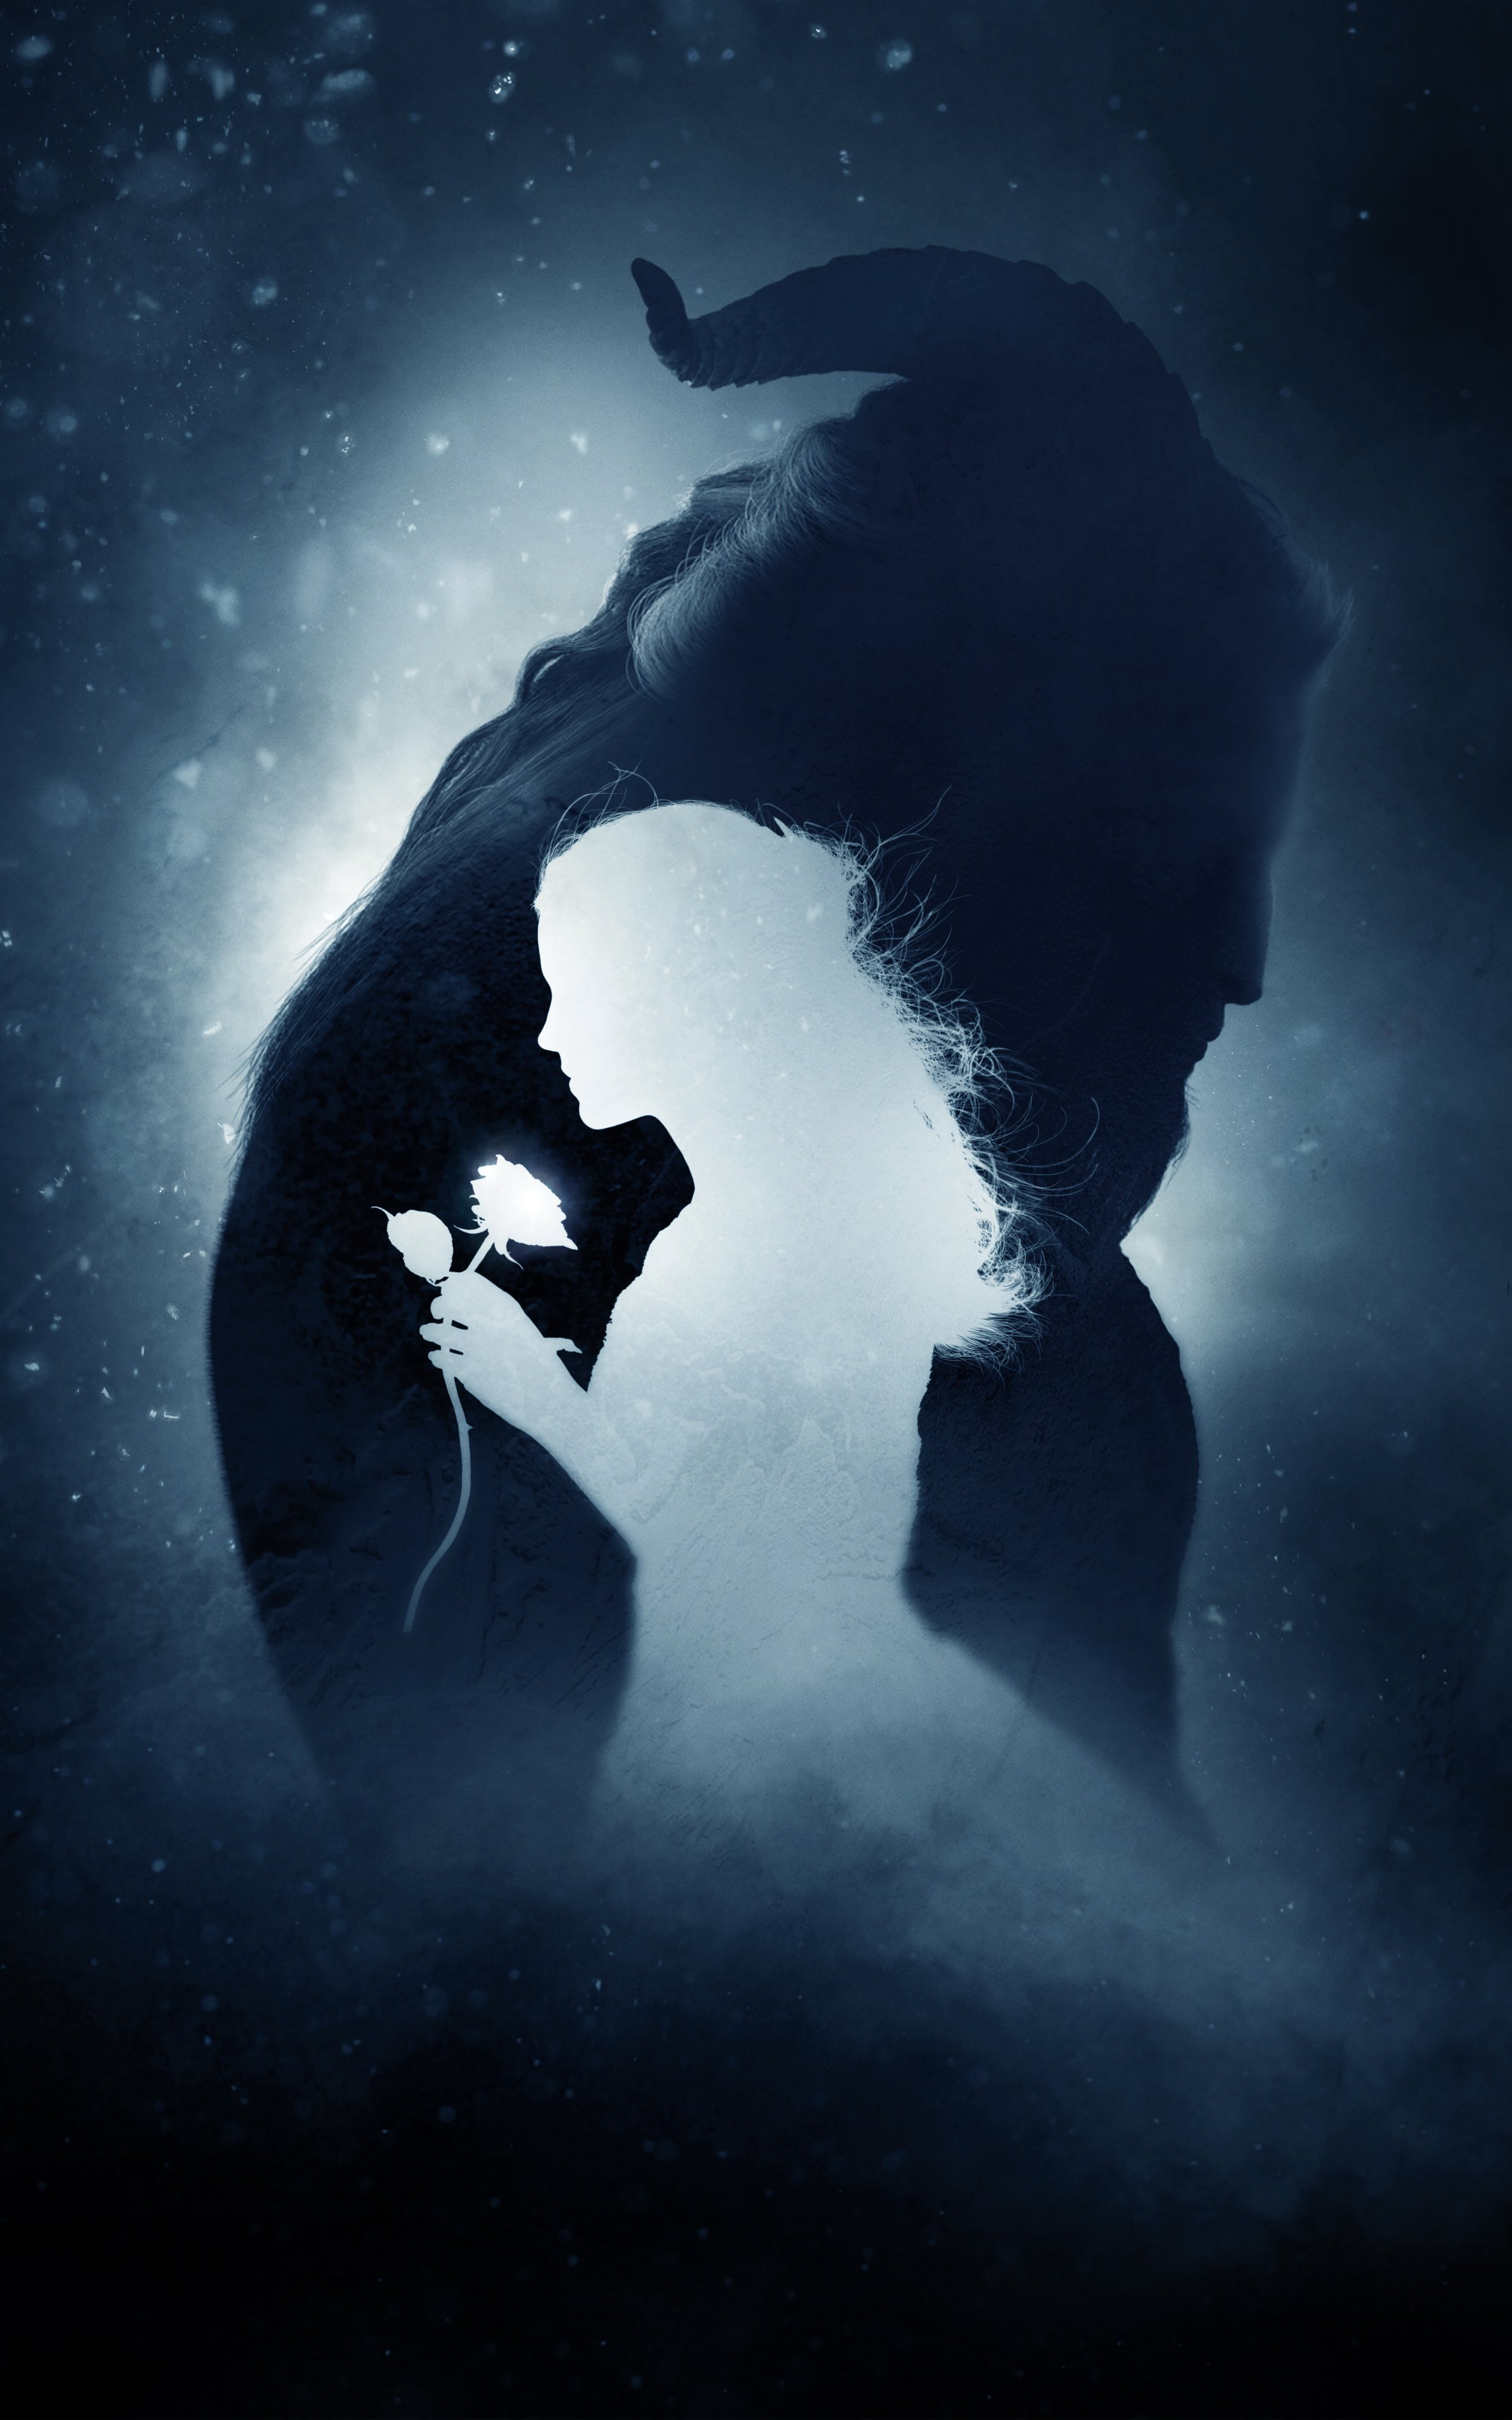 Disneys Beauty and the Beast Mobile Wallpapers 124 1080p to 4k 2500x4000